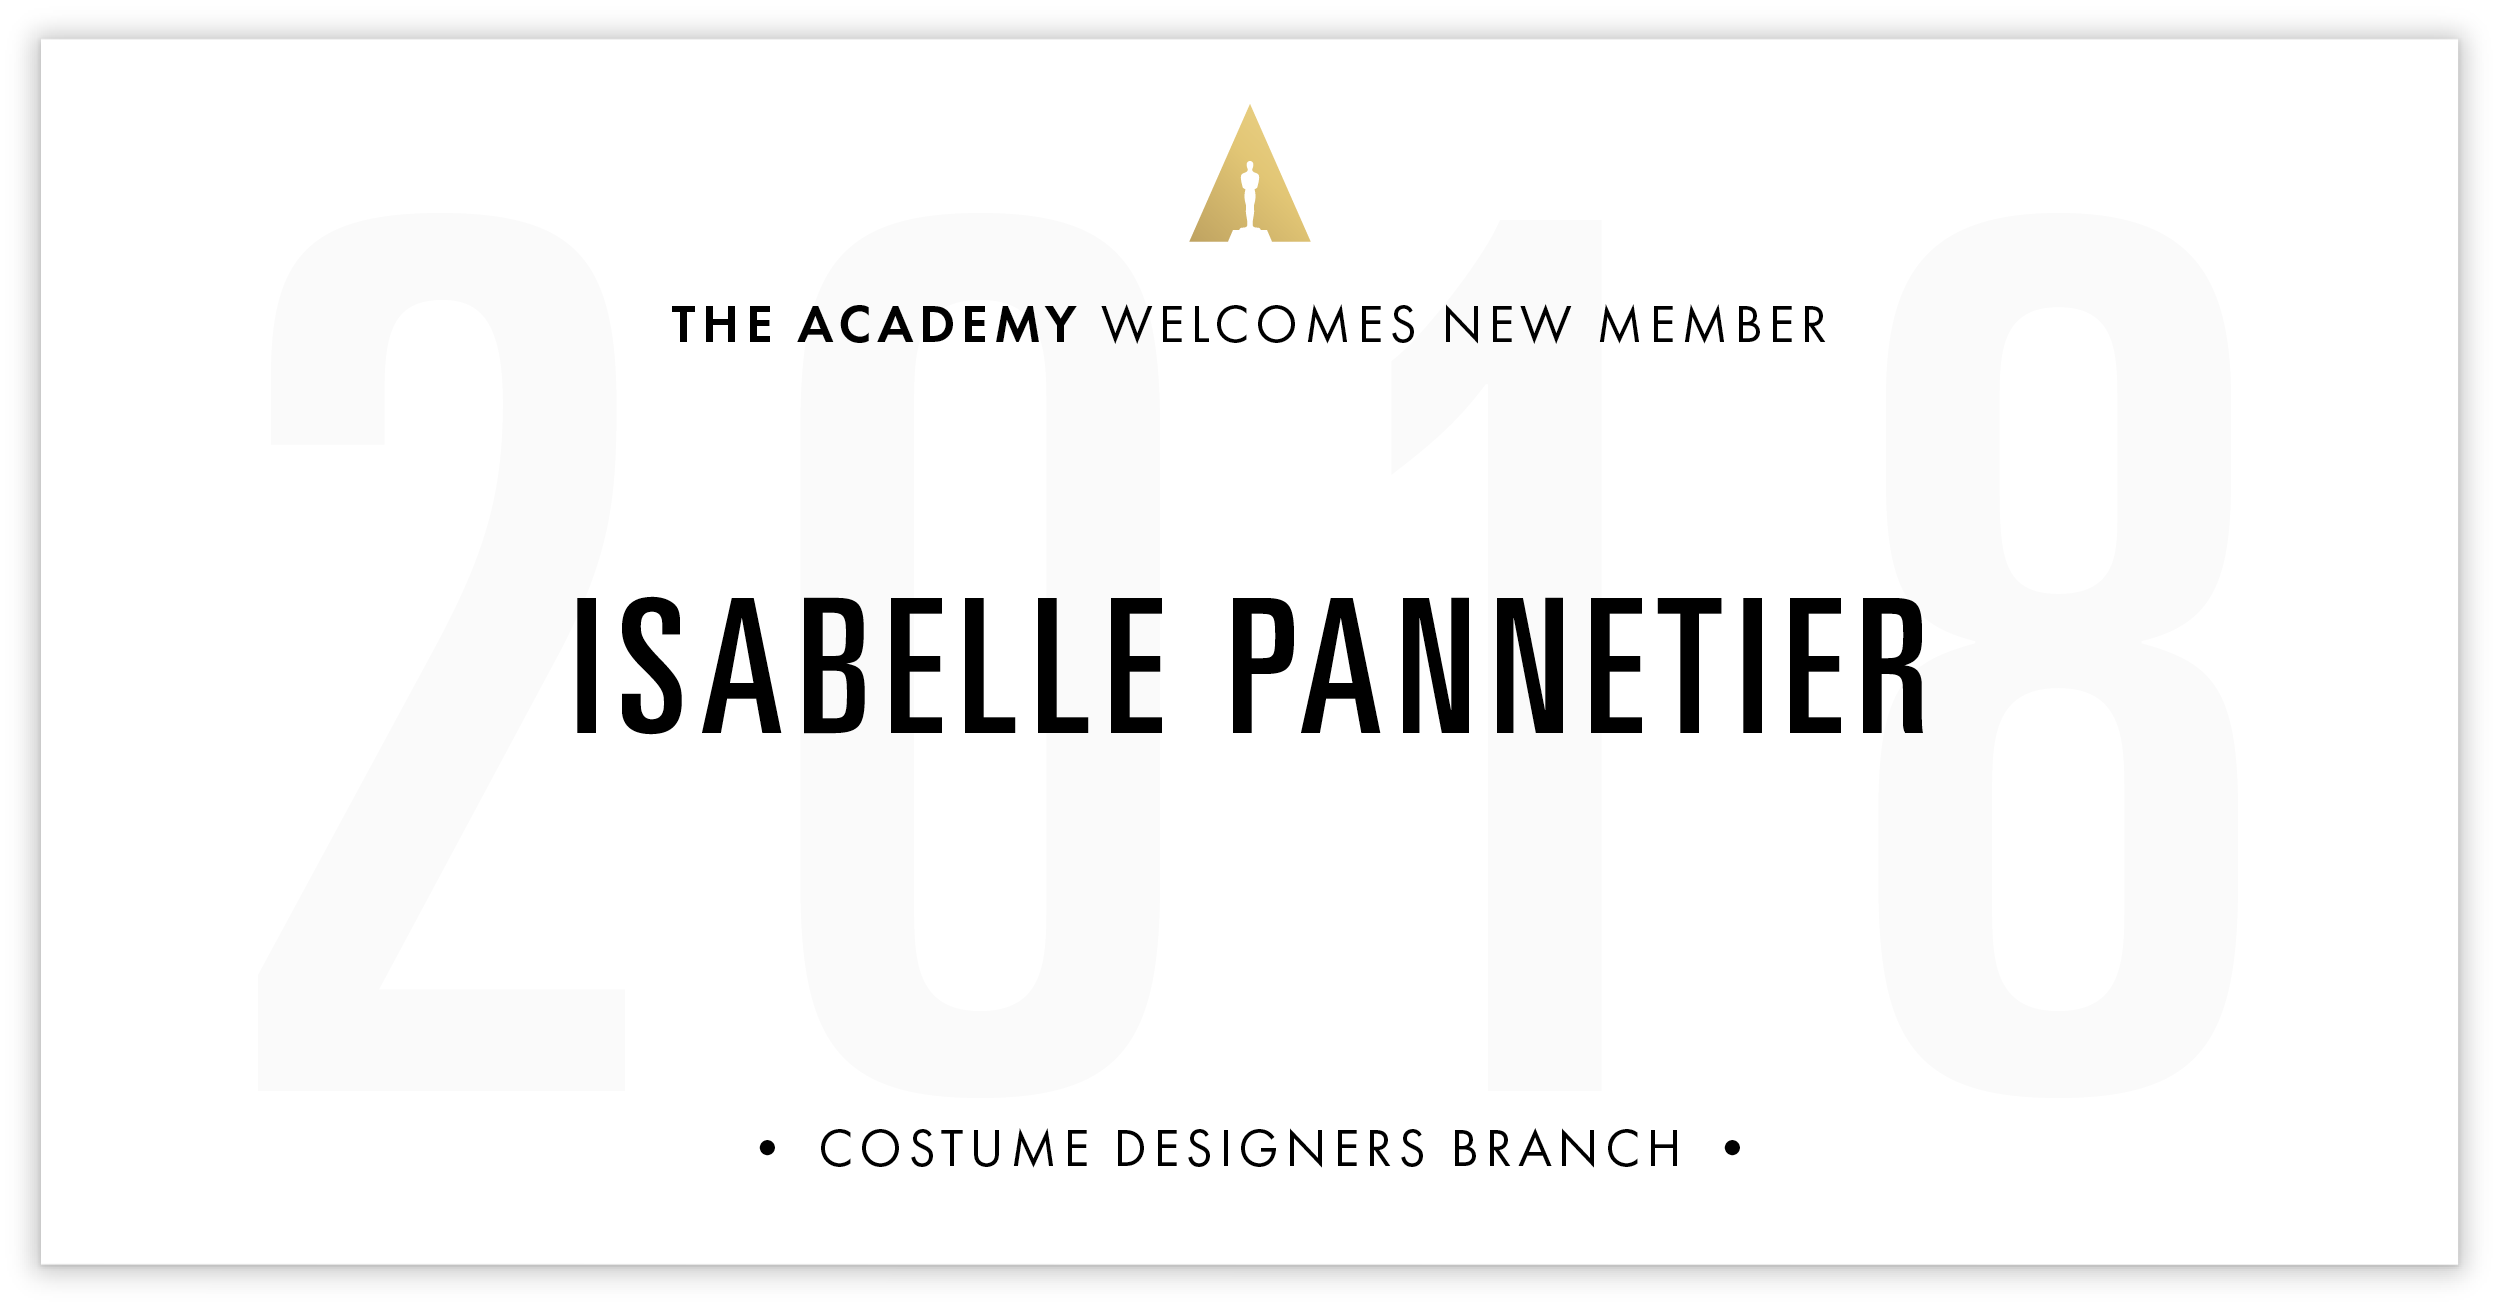 Isabelle Pannetier is invited!